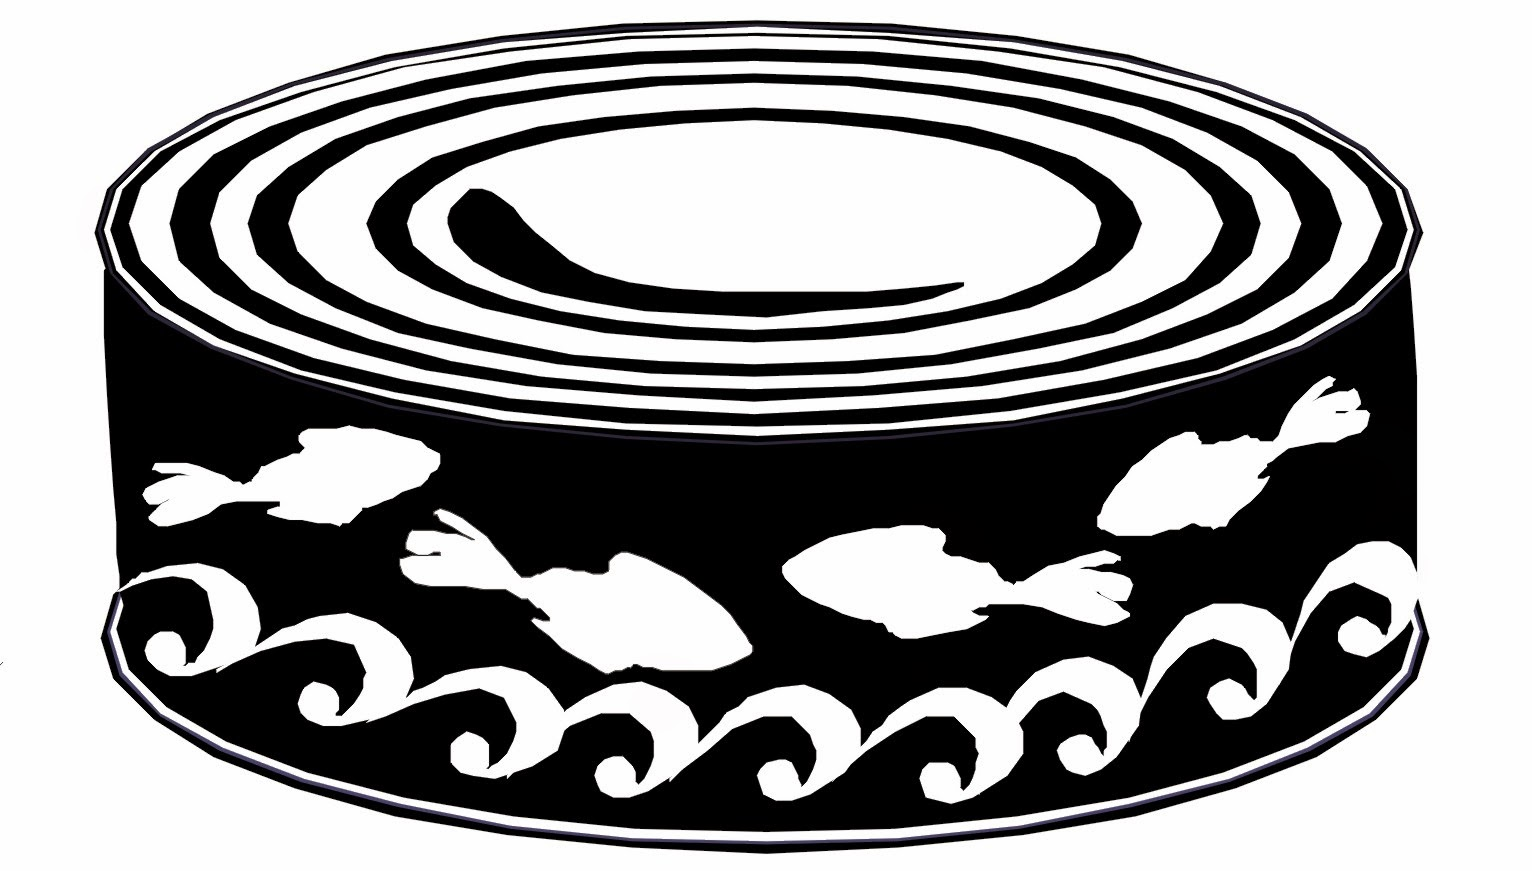 Free Canned Fish Cliparts, Download Free Clip Art, Free Clip.